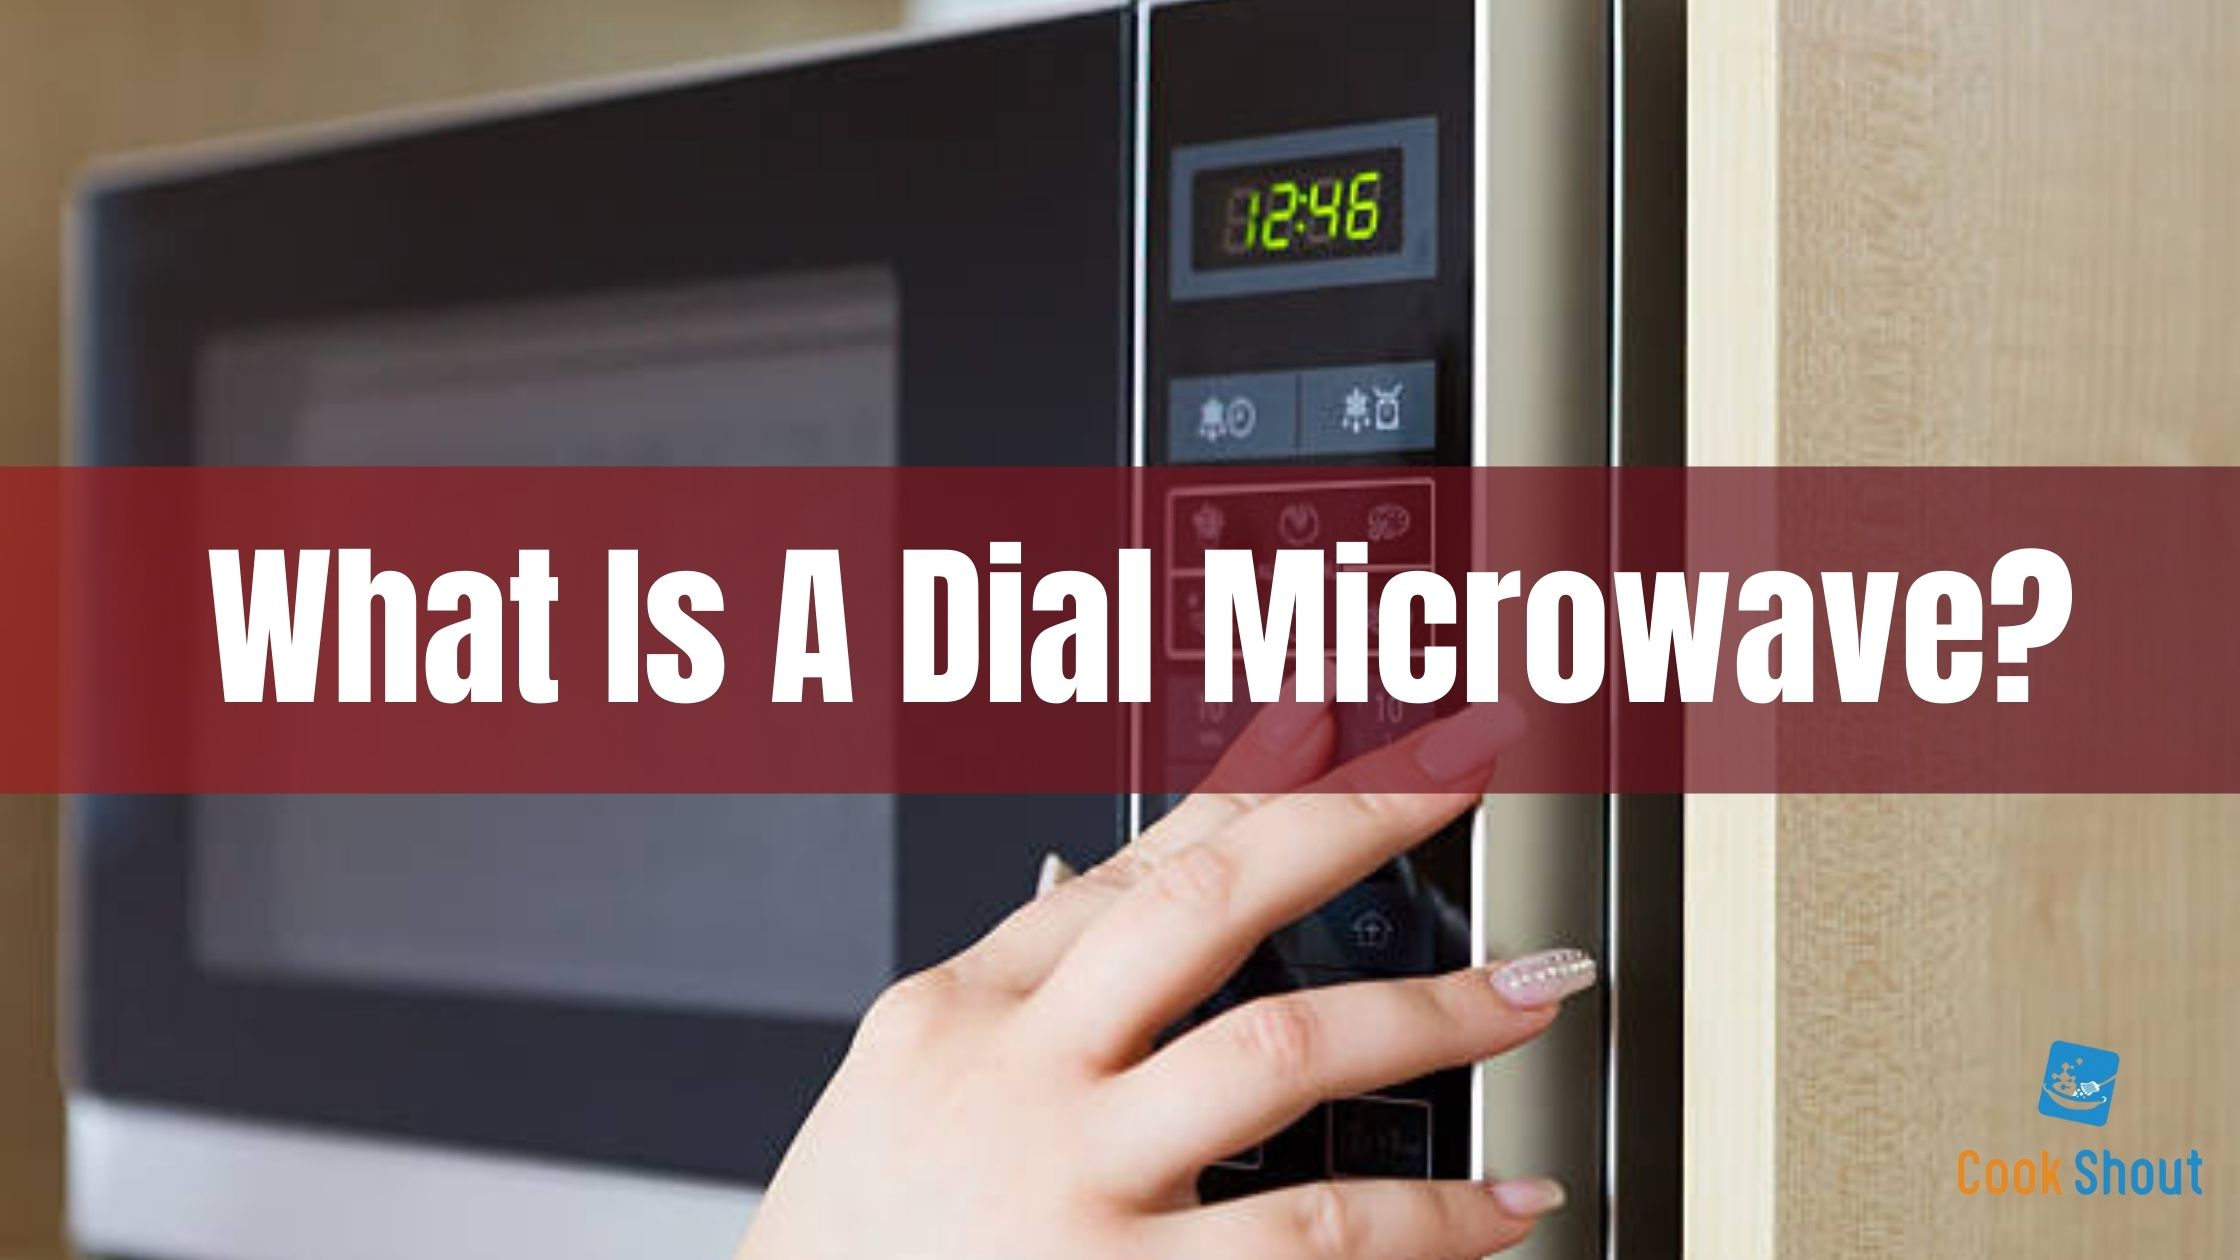 What Is A Dial Microwave